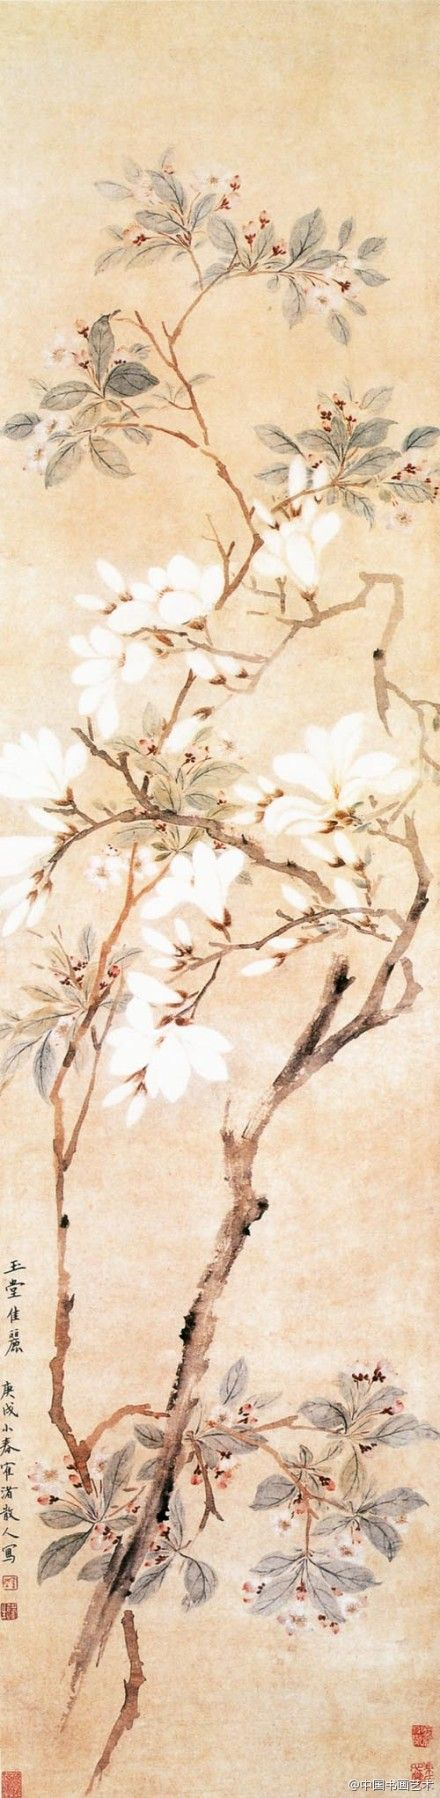 "Chinese brush painting - ""Flowers"""